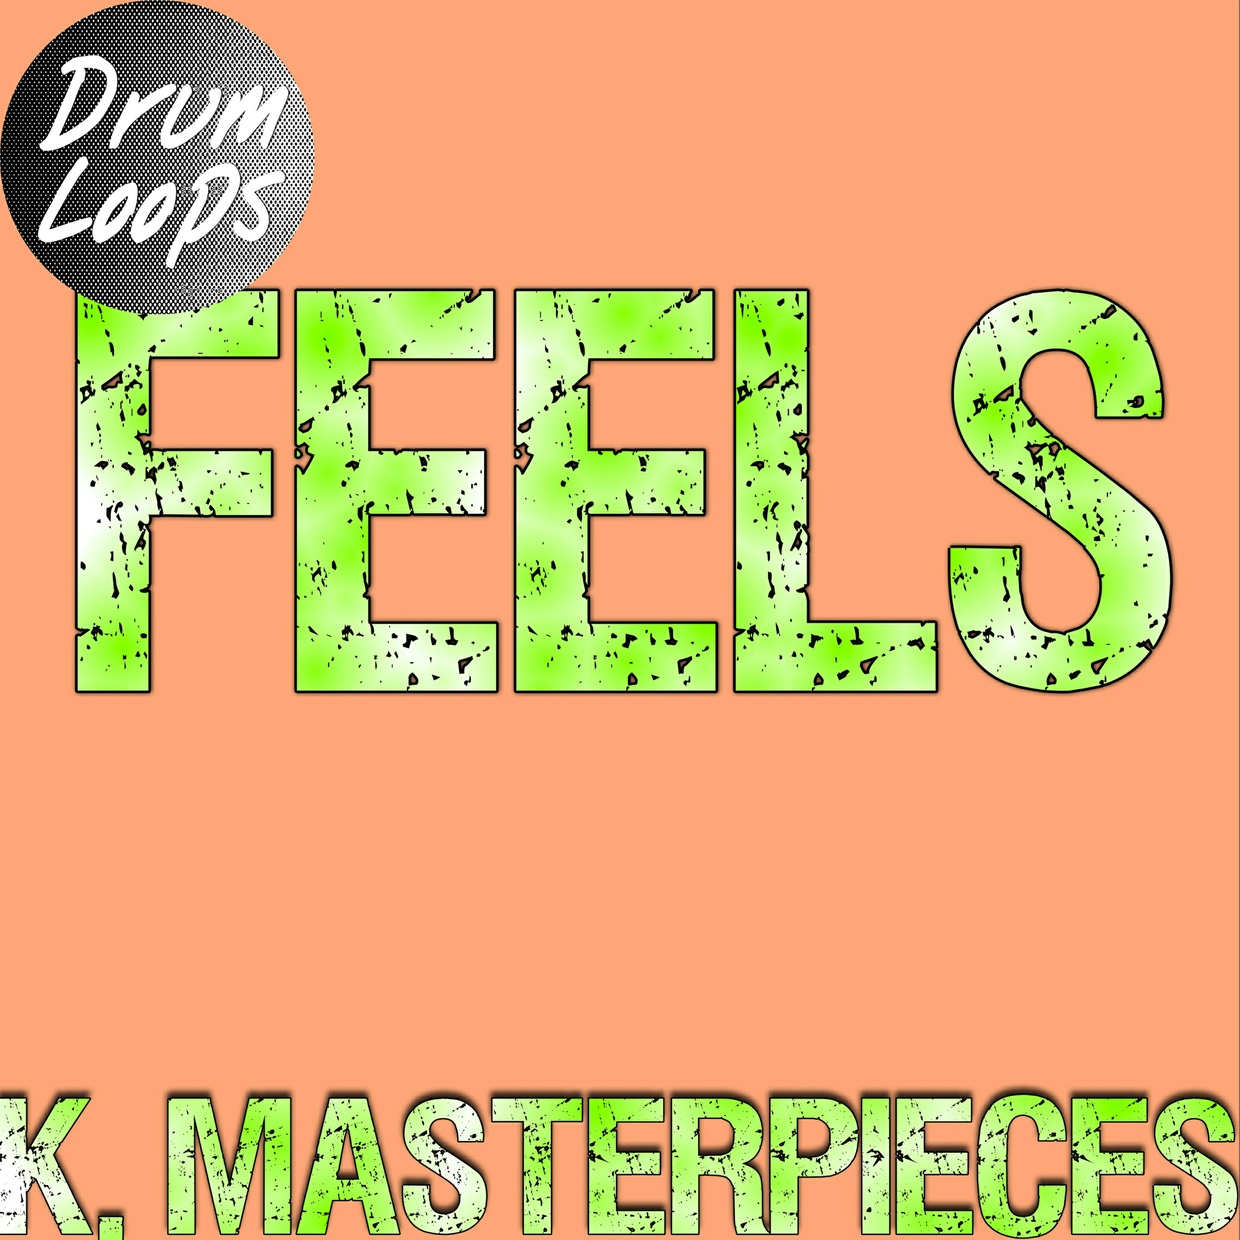 Feels - Drum Loops - Inspired by Calvin Harris, Pharrell Williams, Katy Perry & Big Sean